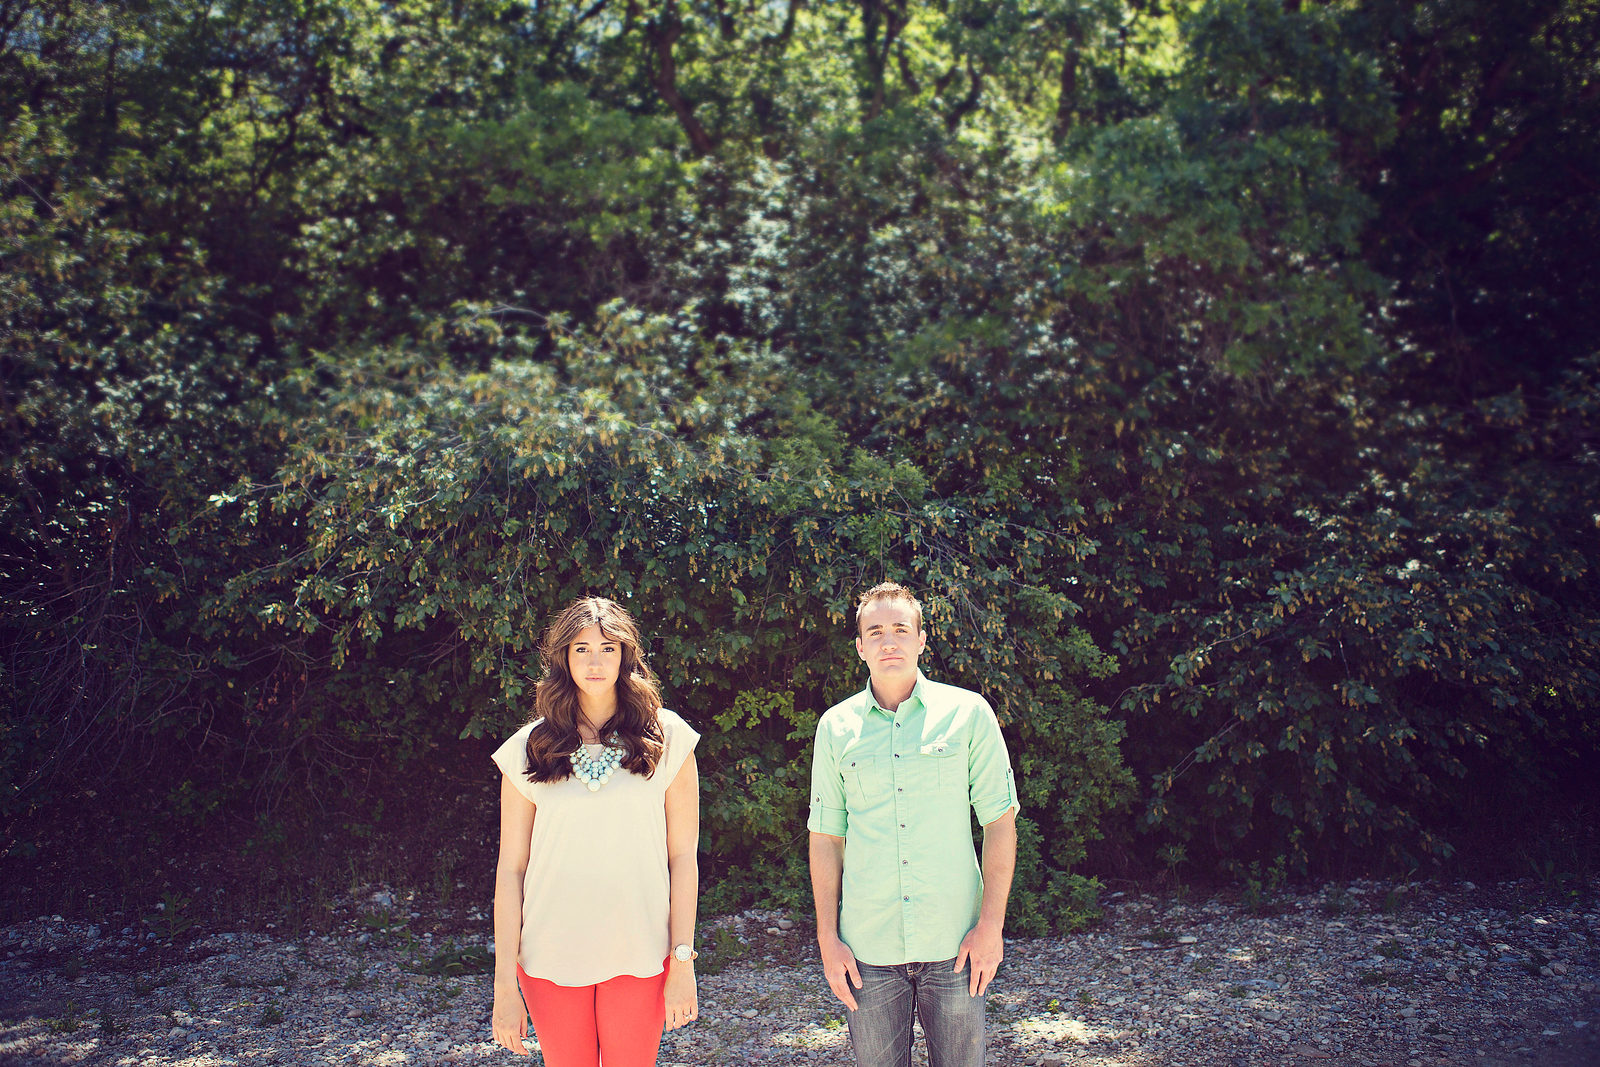 engagement photographers in the triangle, Raleigh wedding photographers, nc weddings, Durham photography, effervescent media works, nc wedding photographers, rebecca mabey